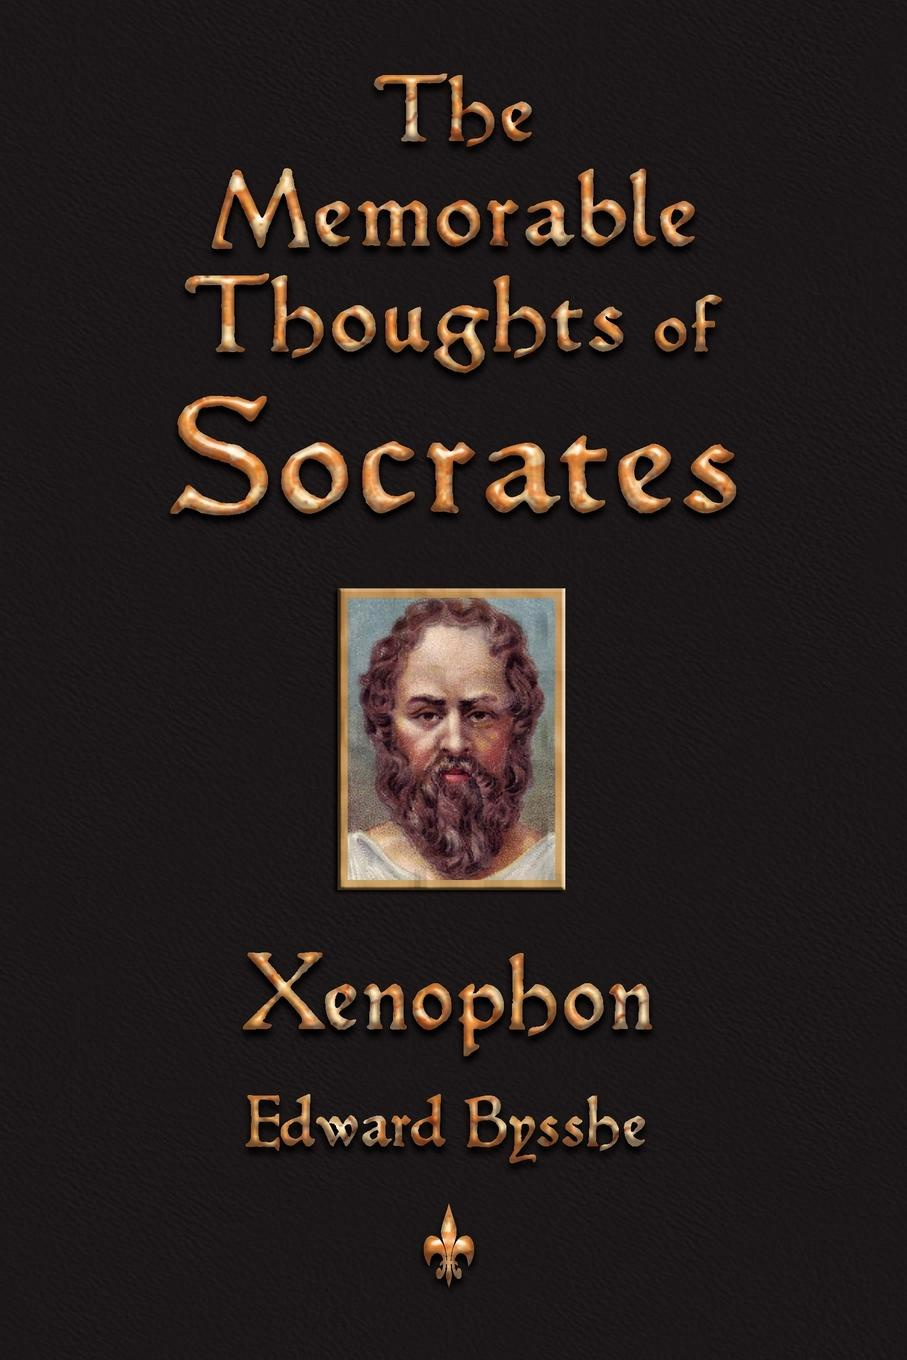 Xenophon, Edward Bysshe The Memorable Thoughts of Socrates xenophon the memorable thoughts of socrates